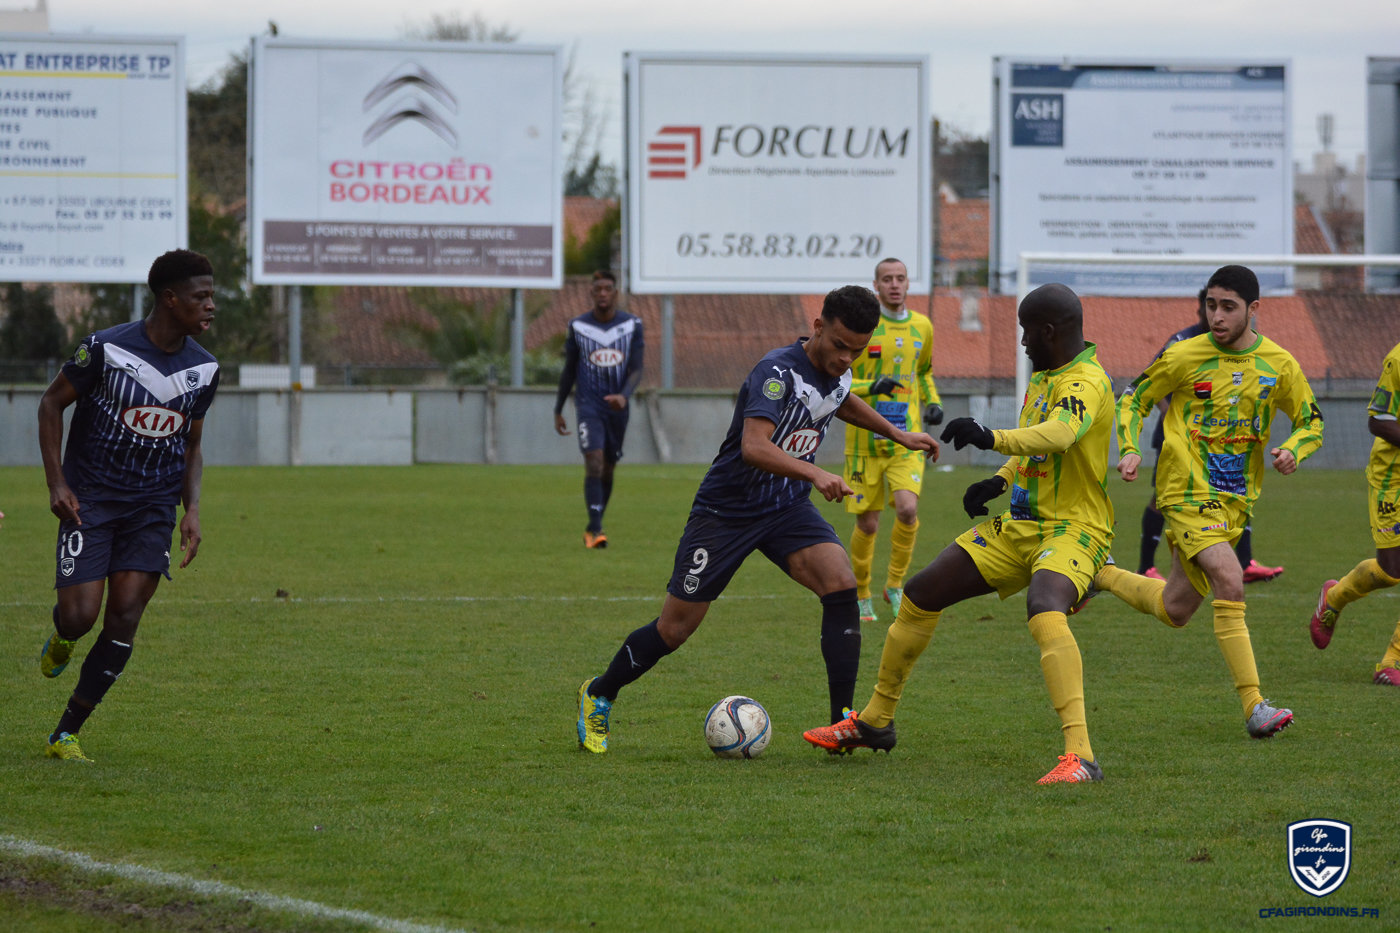 Cfa Girondins : Nilor absent plusieurs semaines - Formation Girondins